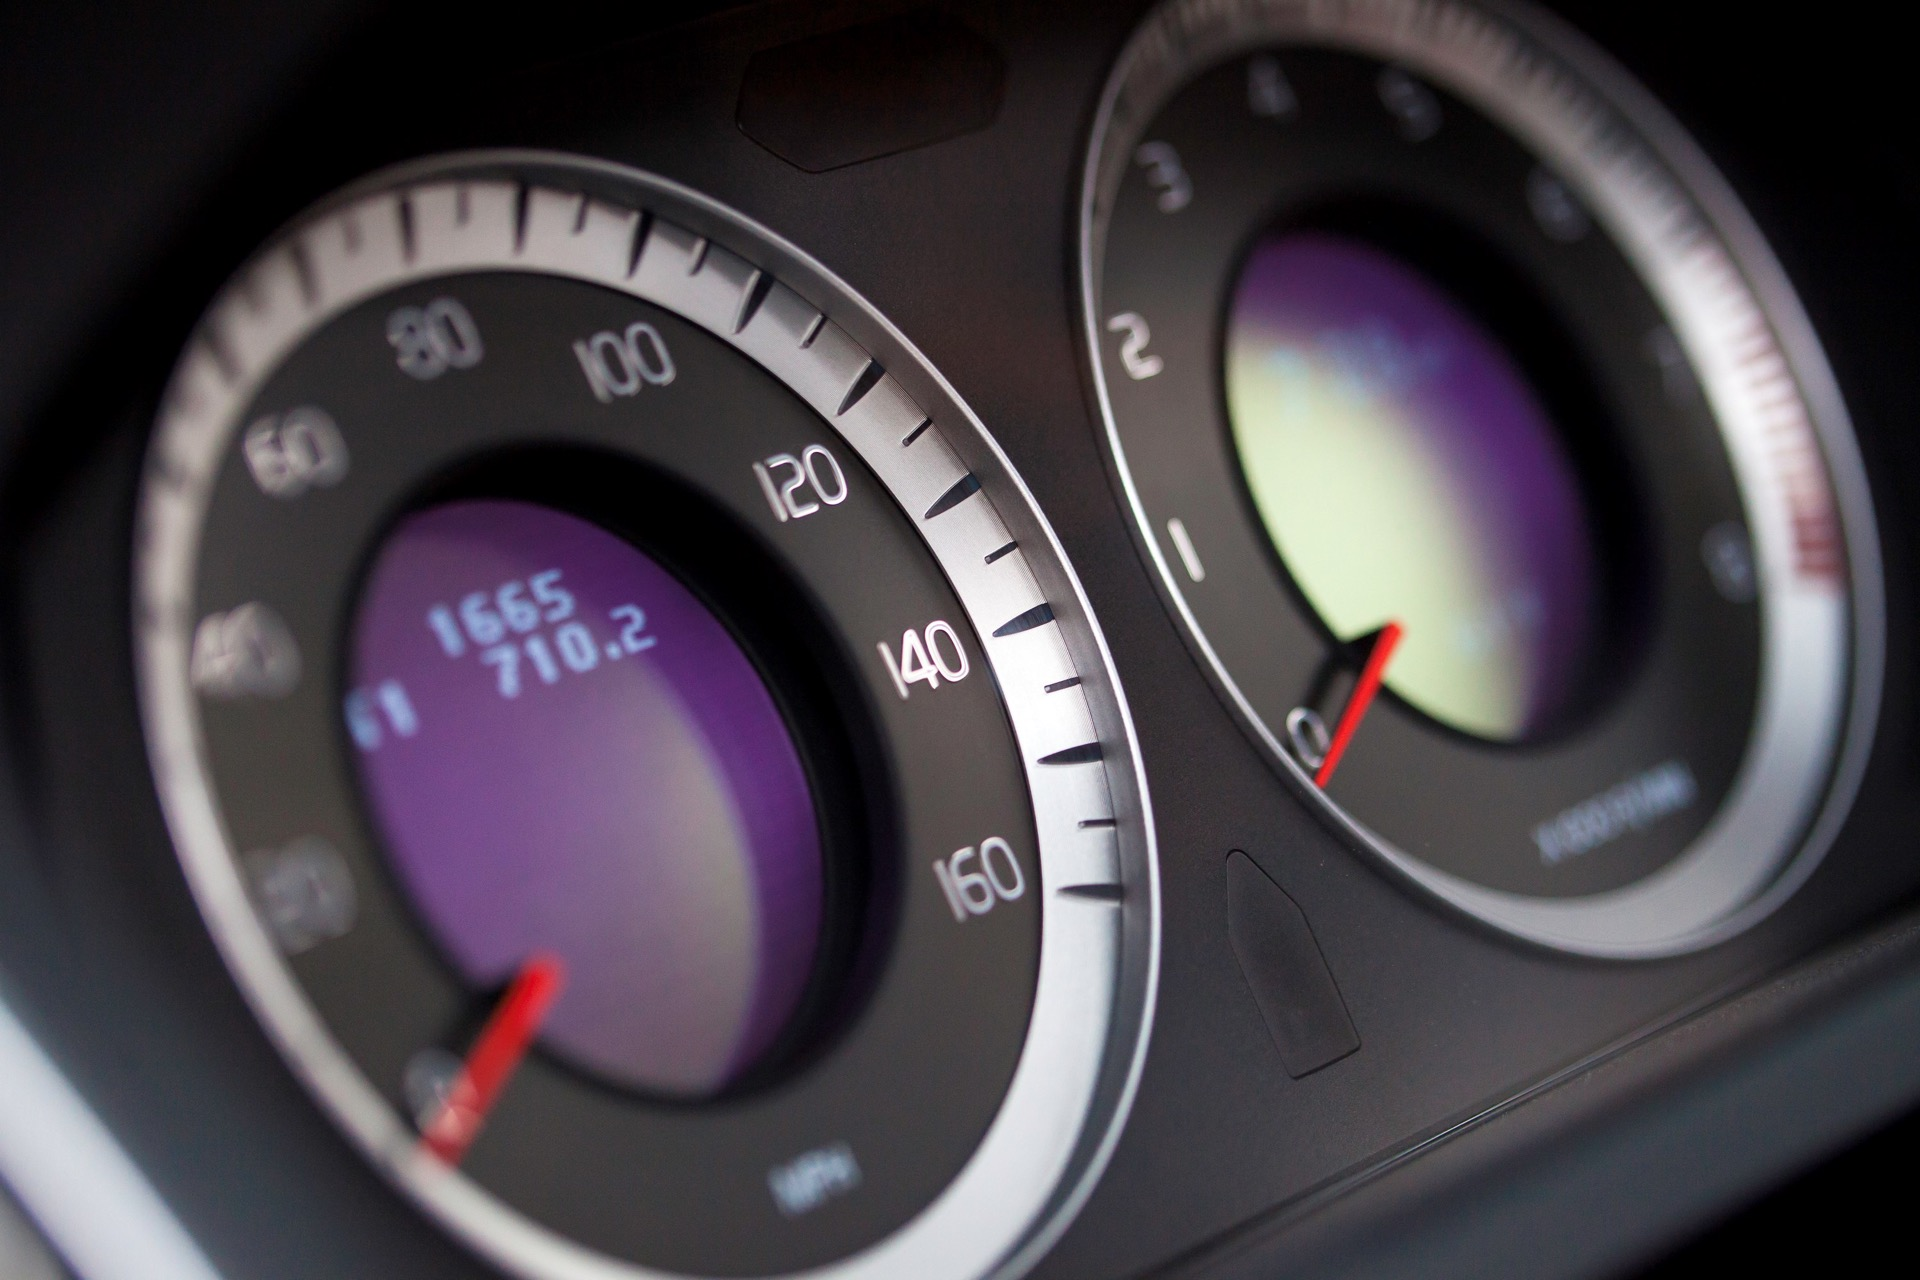 S60 T6 Awd Instruments -  Volvo